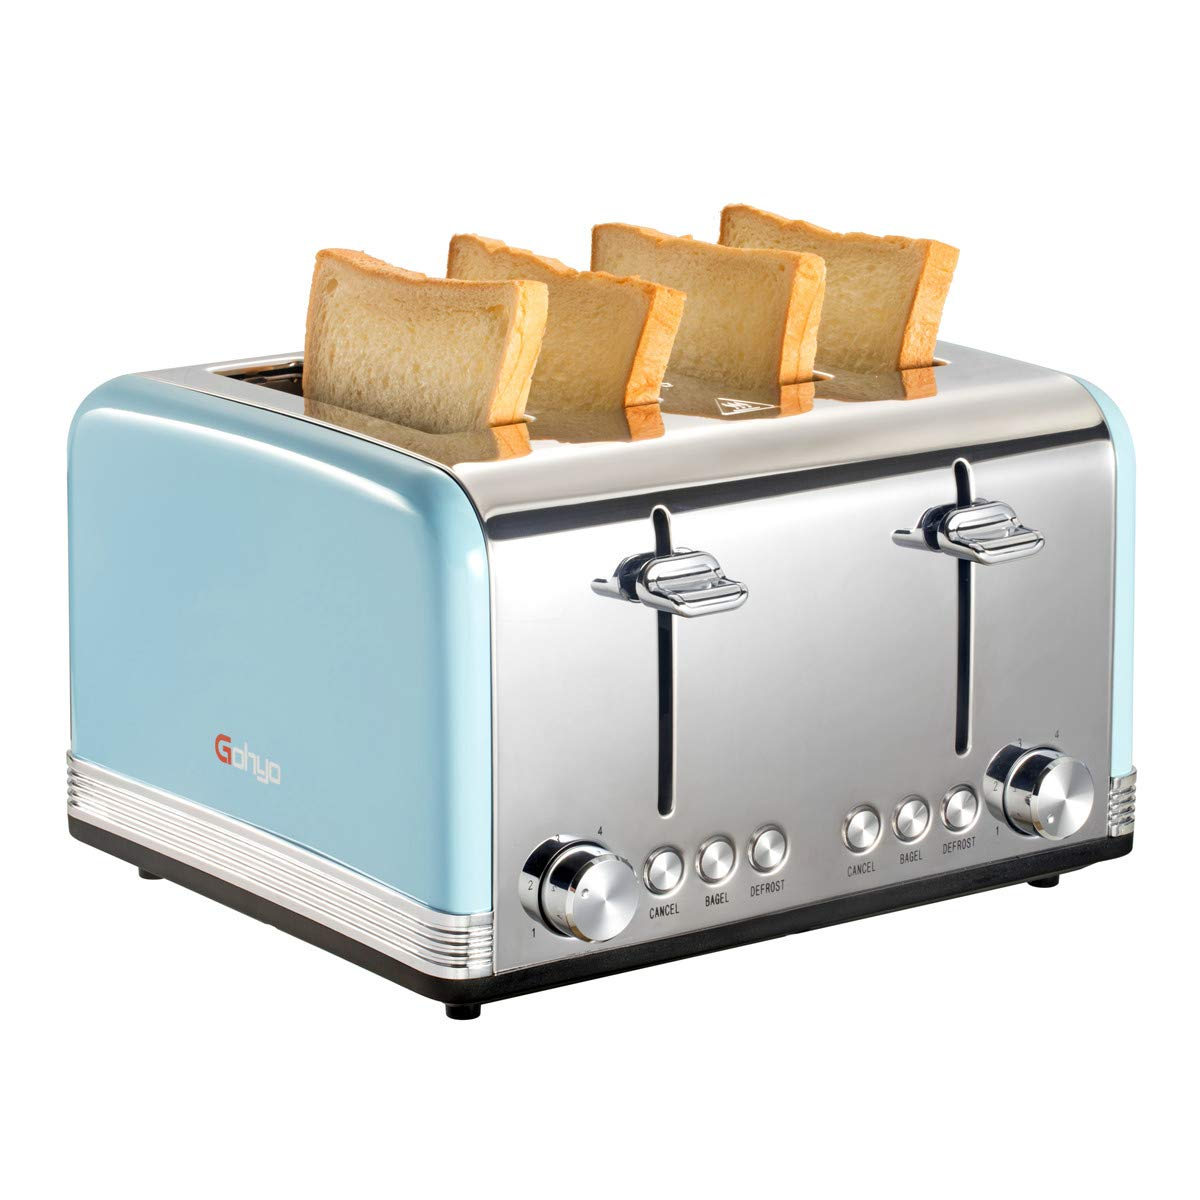 Killer upgrade from our previous toaster!